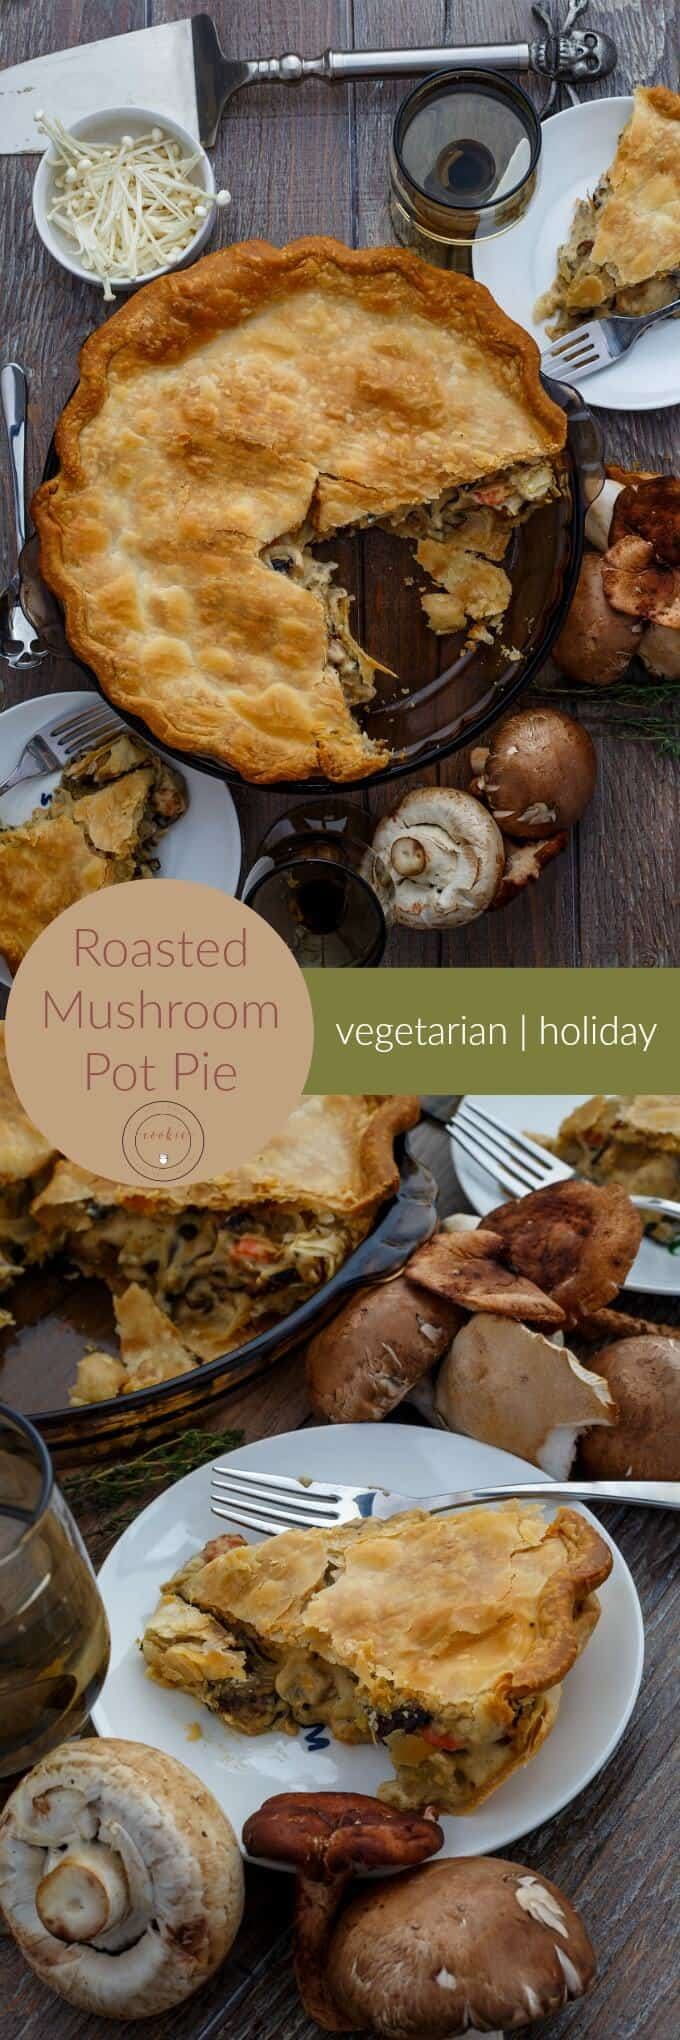 Roasted Mushroom Pot Pie